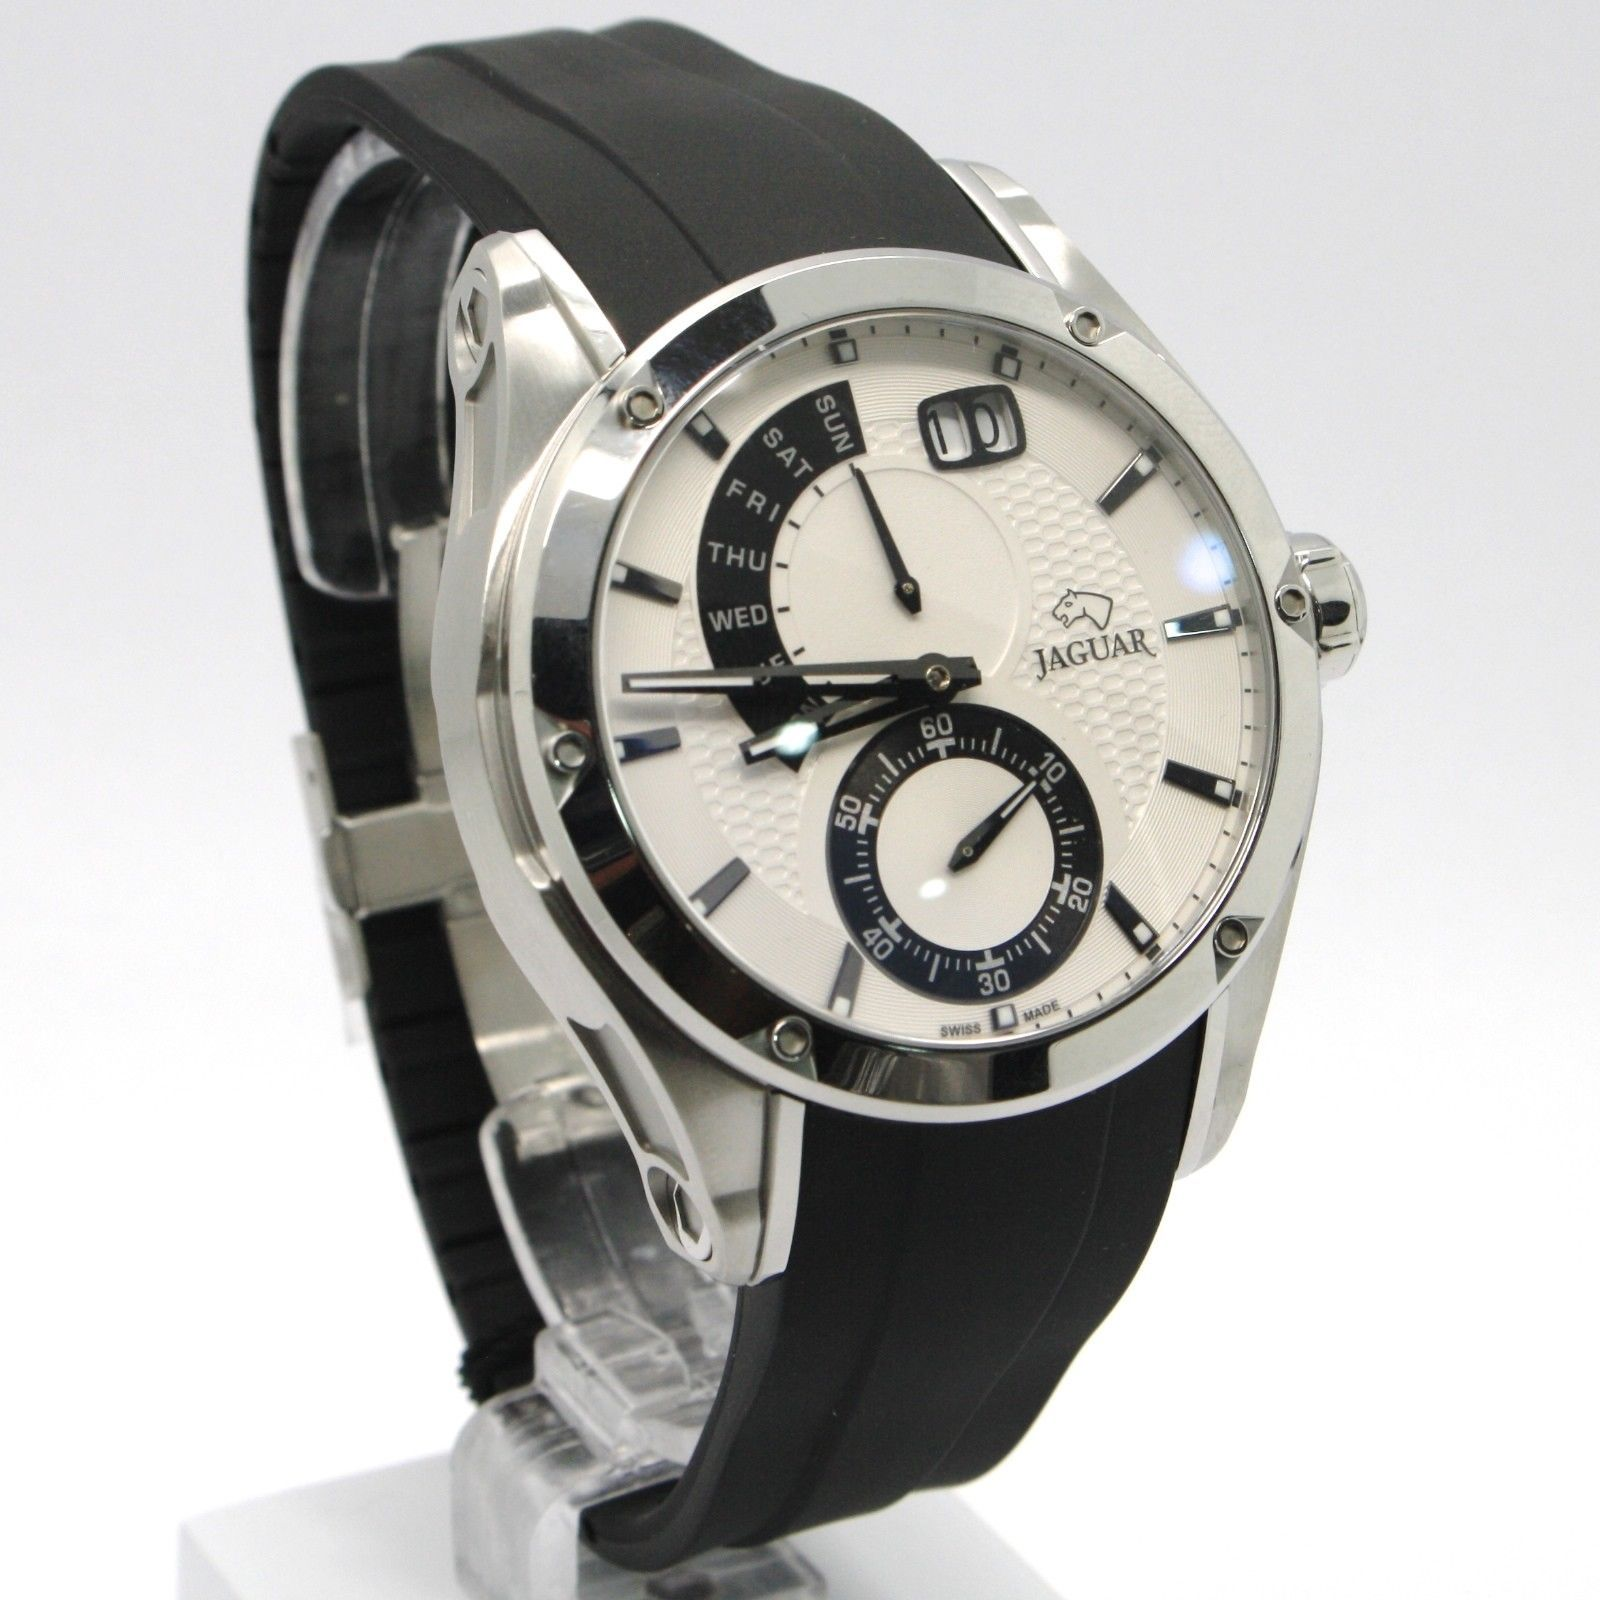 JAGUAR WATCH, SWISS MADE, SAPPHIRE CRYSTAL, 44 MM WHITE CASE, BLACK RUBBER BAND